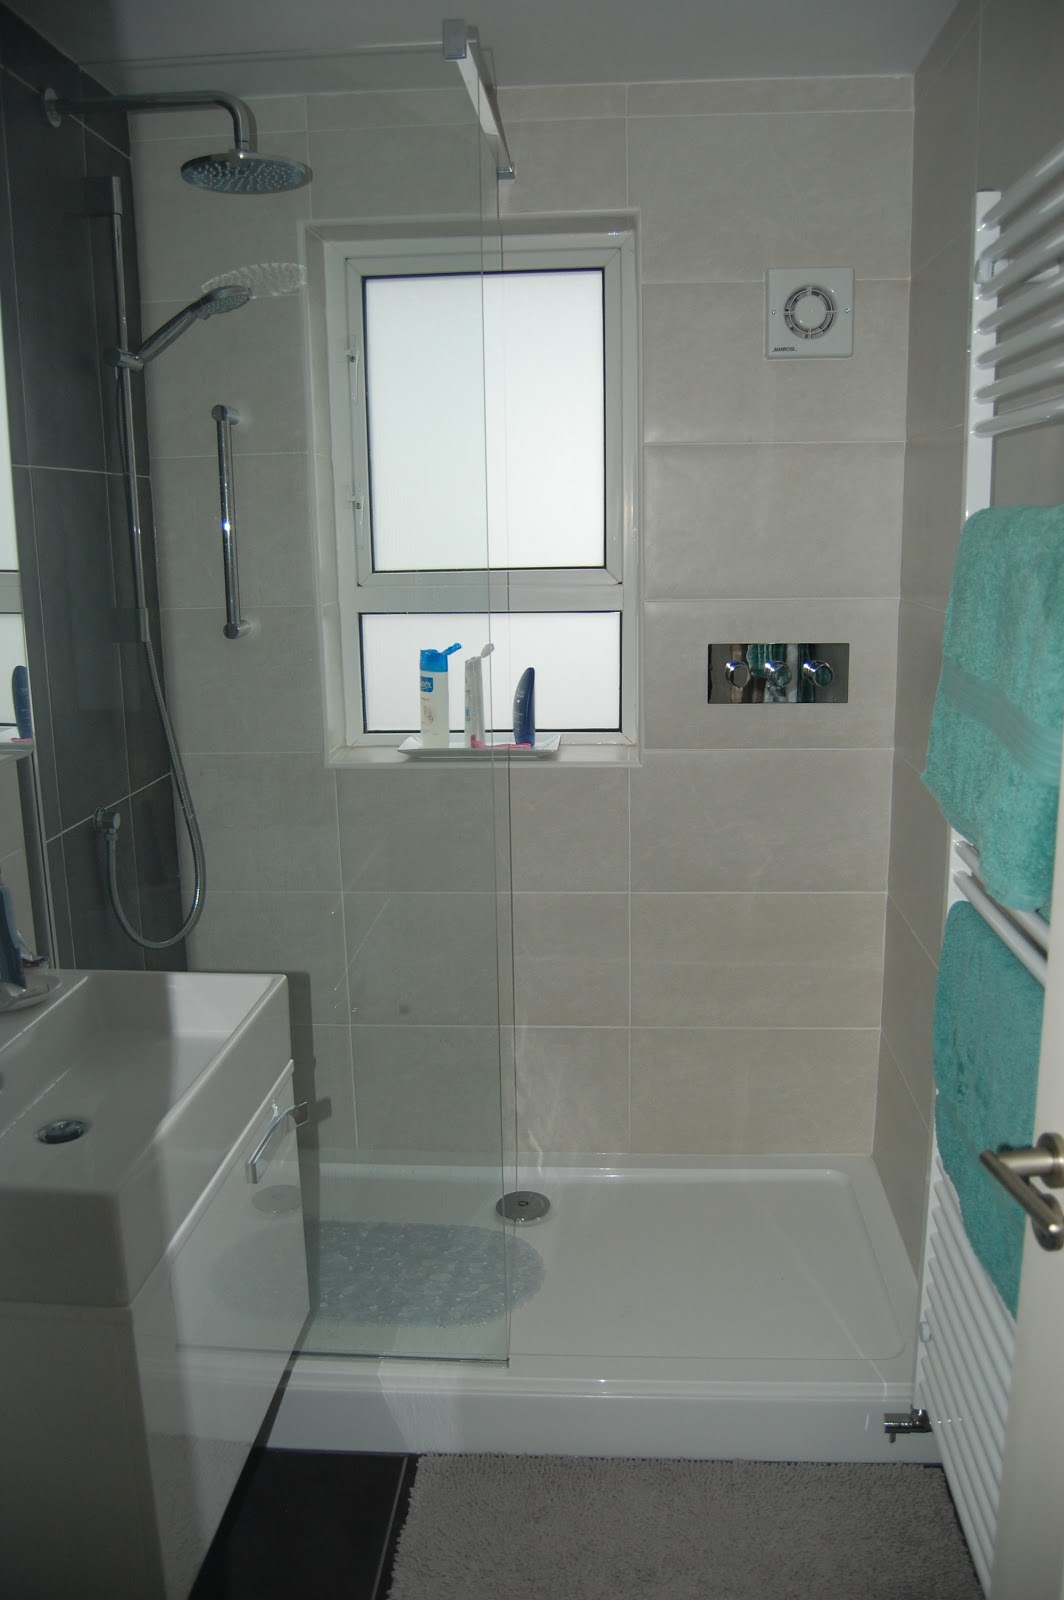 6x8 bathroom layout  another home image ideas